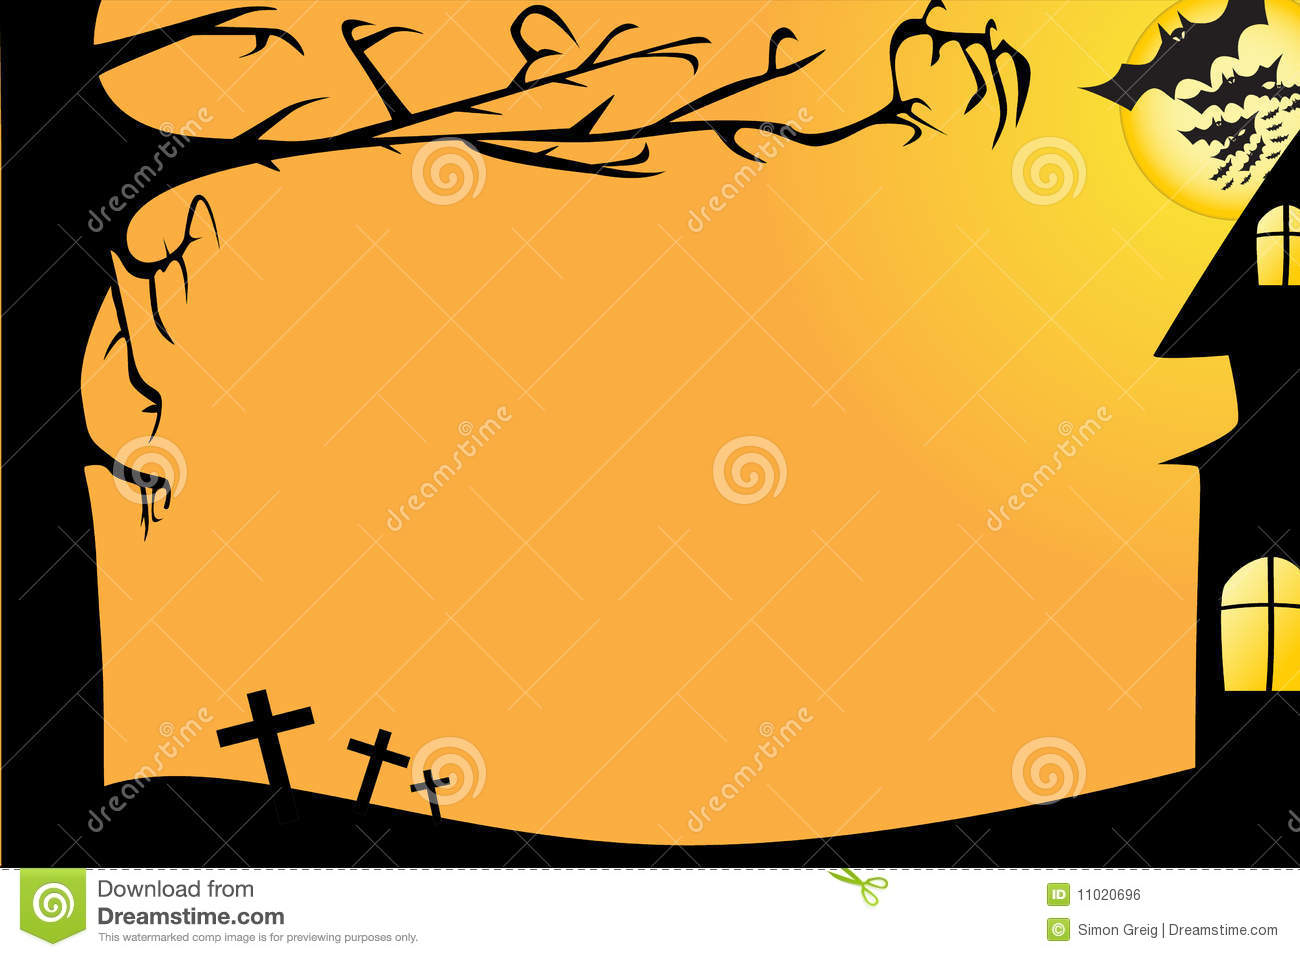 Displaying (19) Gallery Images For Halloween Party Borders...